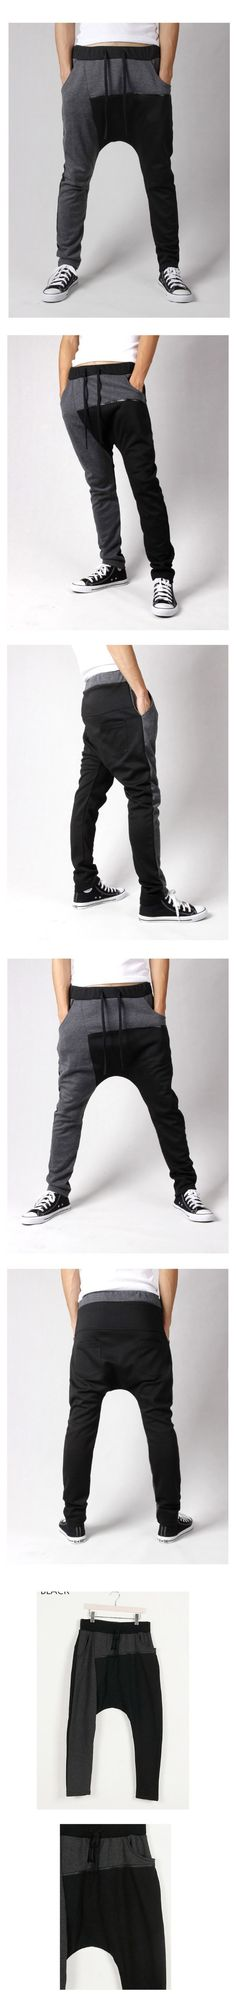 Loose Casual Harem Cross-pants for Men